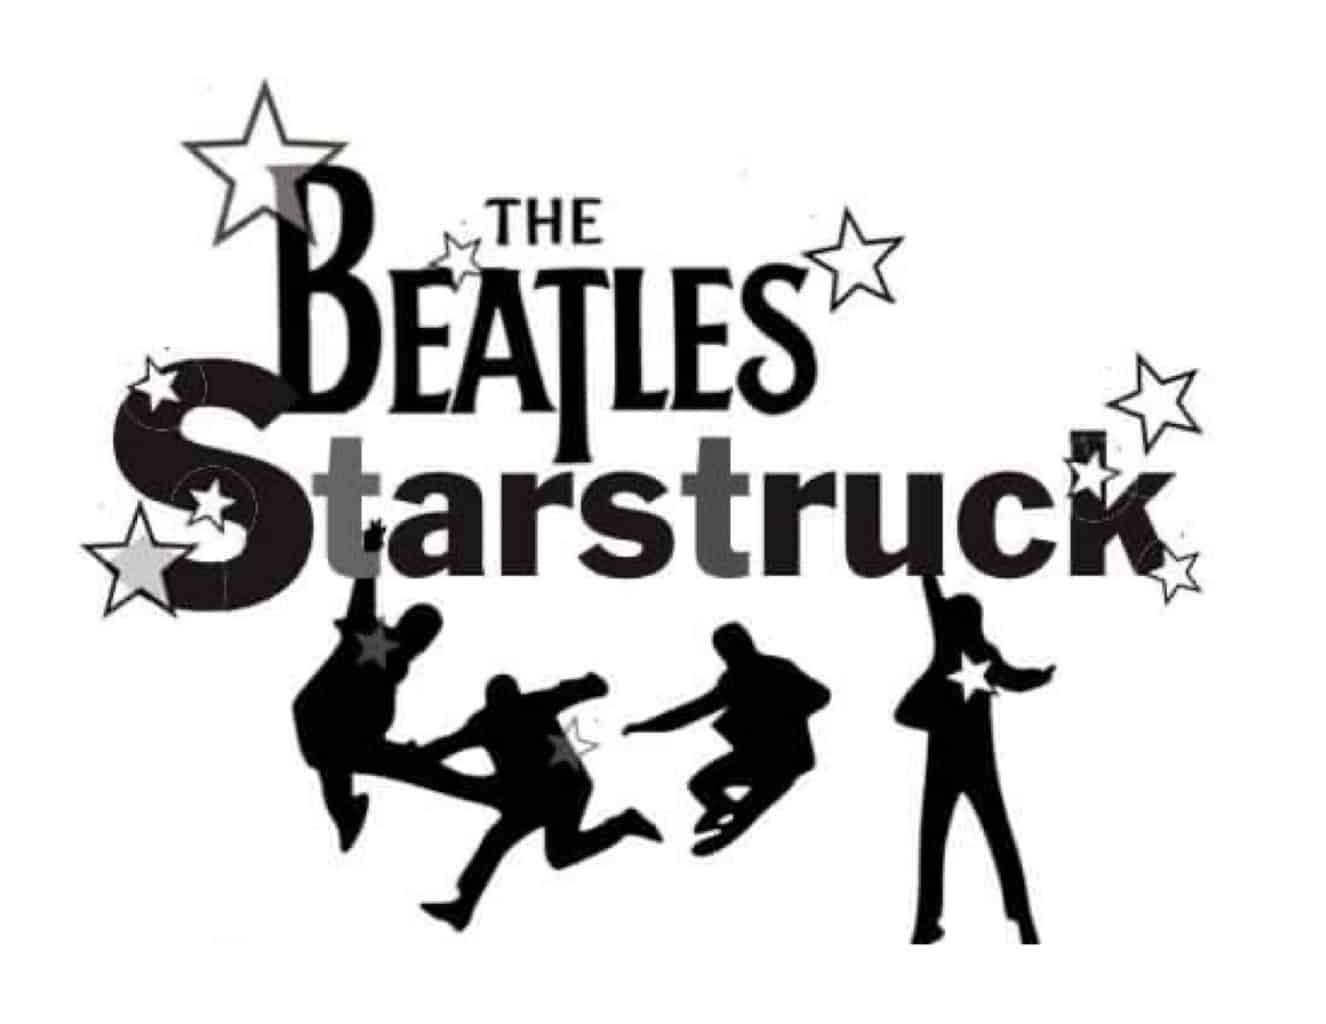 Starstruck: The Beatles